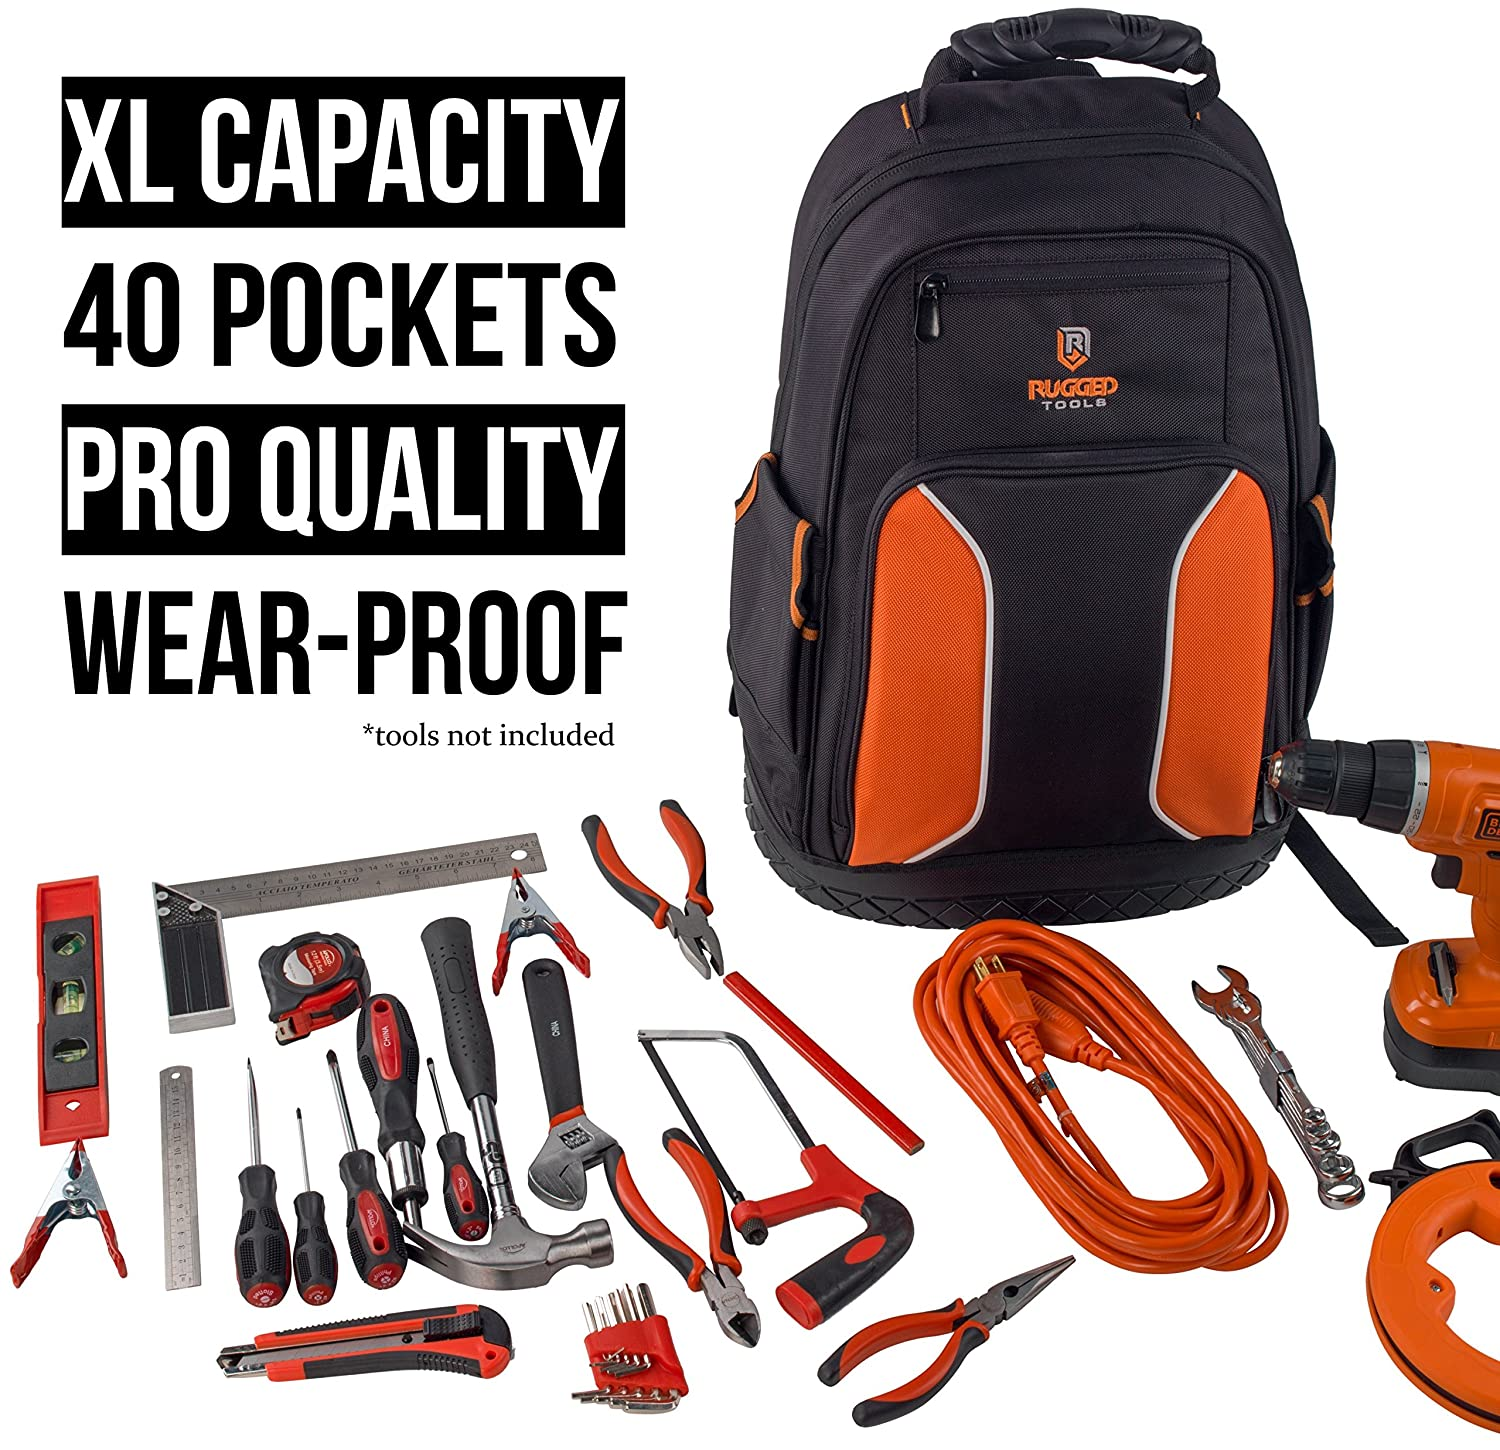 40 Pocket Heavy Duty Jobsite Tool Rucksack Perfect Storage /& Organizer for a Contractor Electrician Plumber Rugged Tools Pro Tool Backpack Cable Repairman HVAC